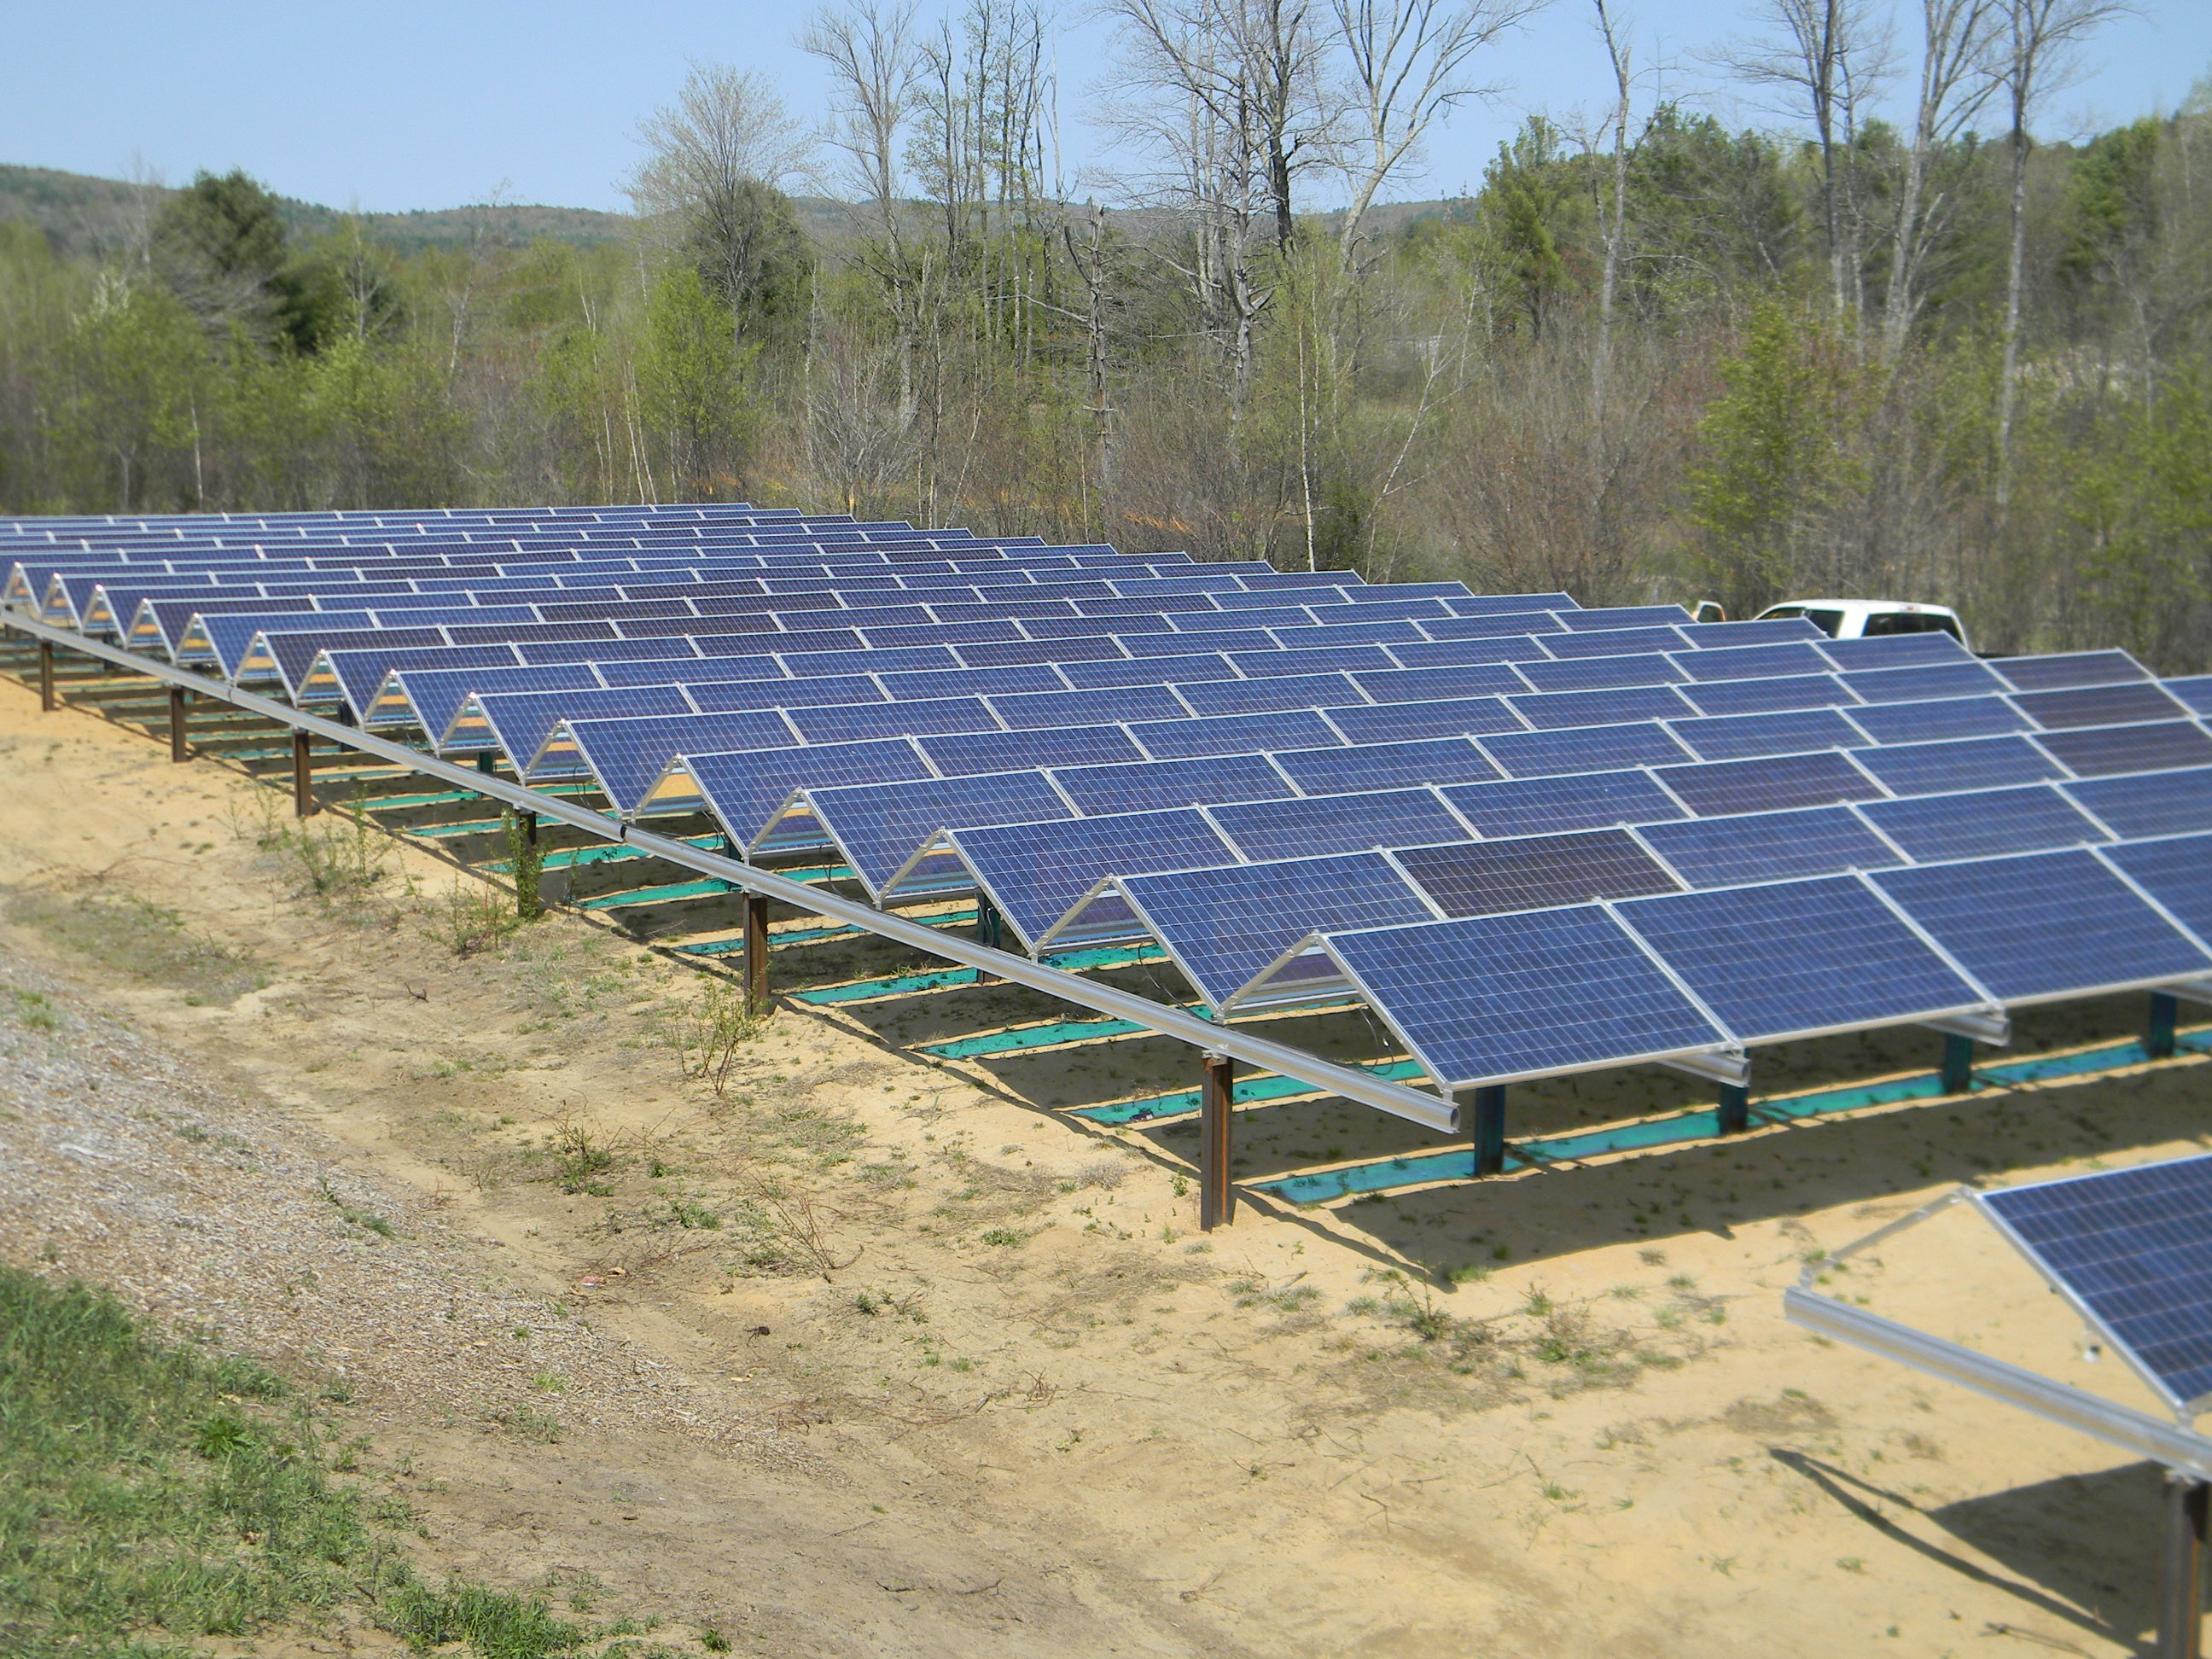 The first solar array was built on Furlone's property in Spring 2015.